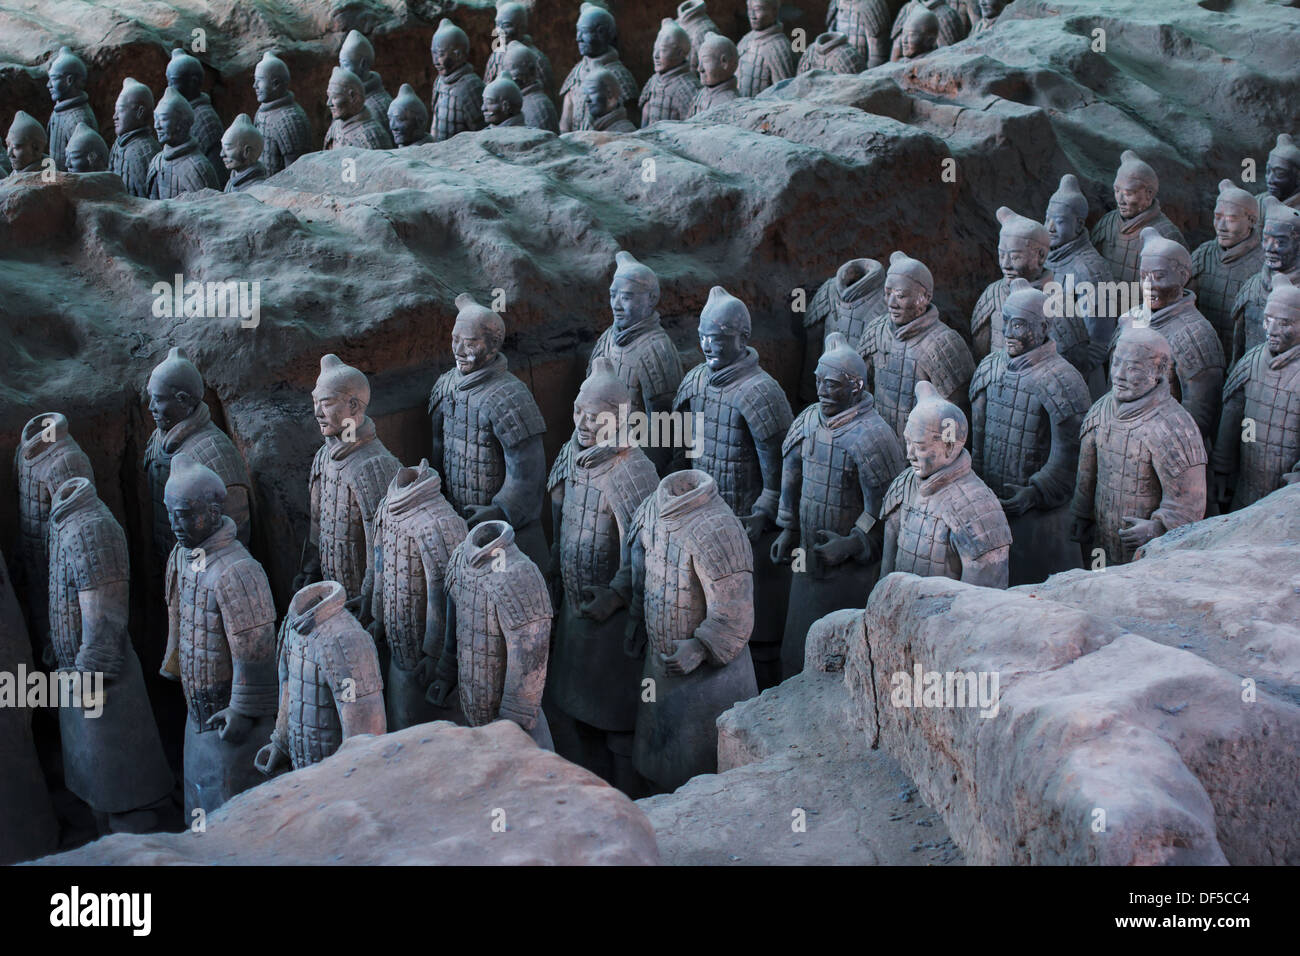 Terra Cotta Warriors,one of the wonders of the world,in Xi'an of China - Stock Image